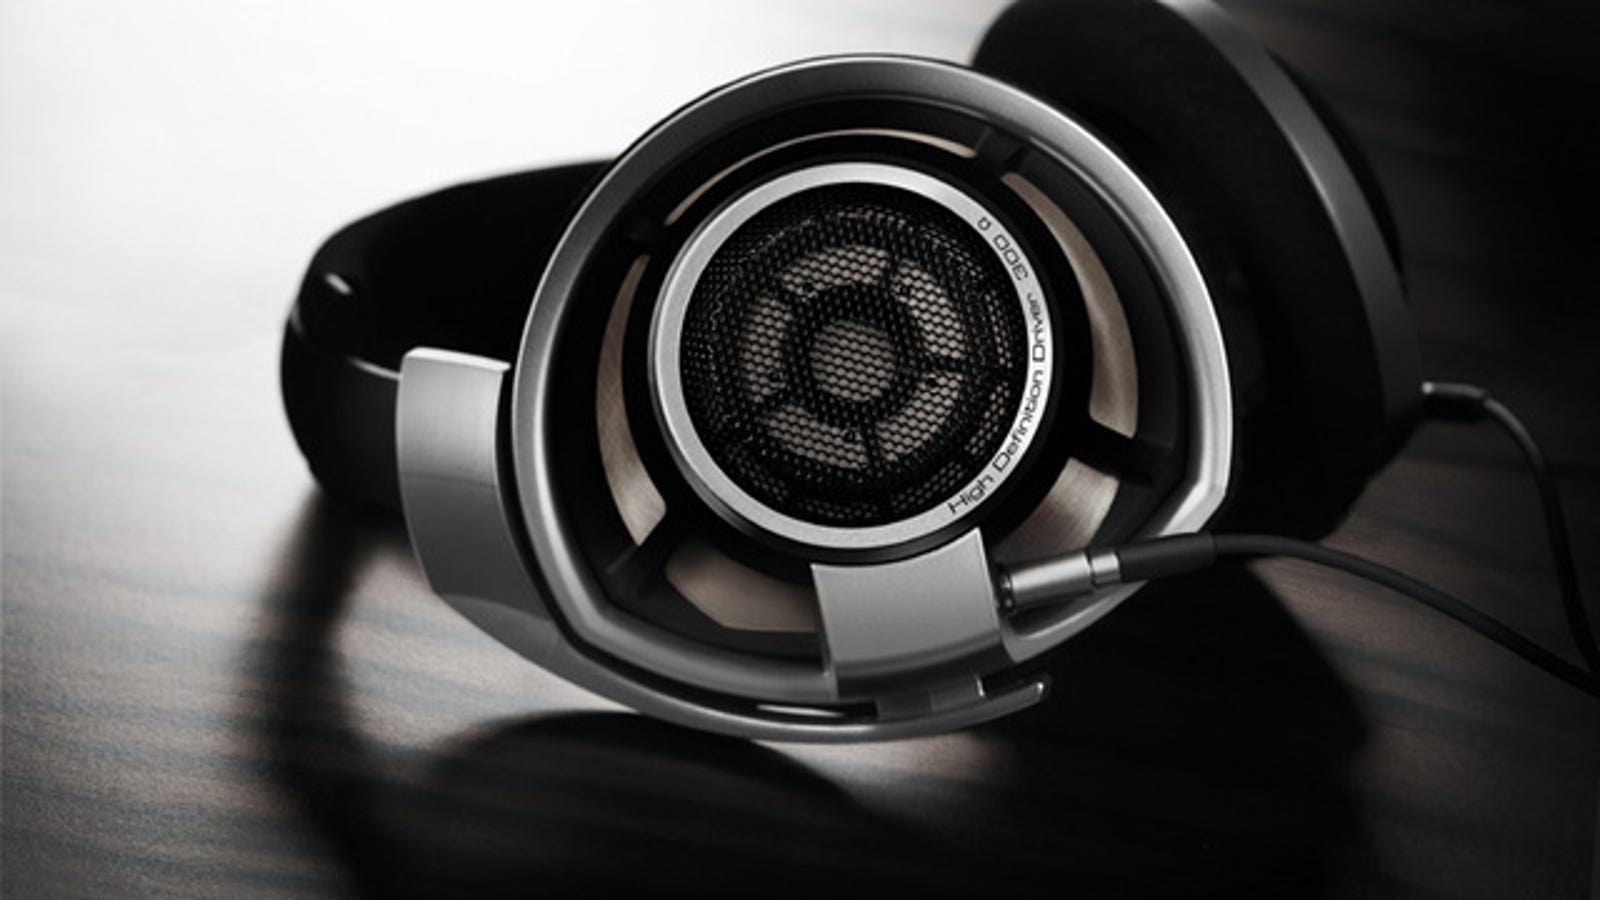 akg k375 earbuds - Ask One of the World's Top Headphone Engineers Whatever You Want